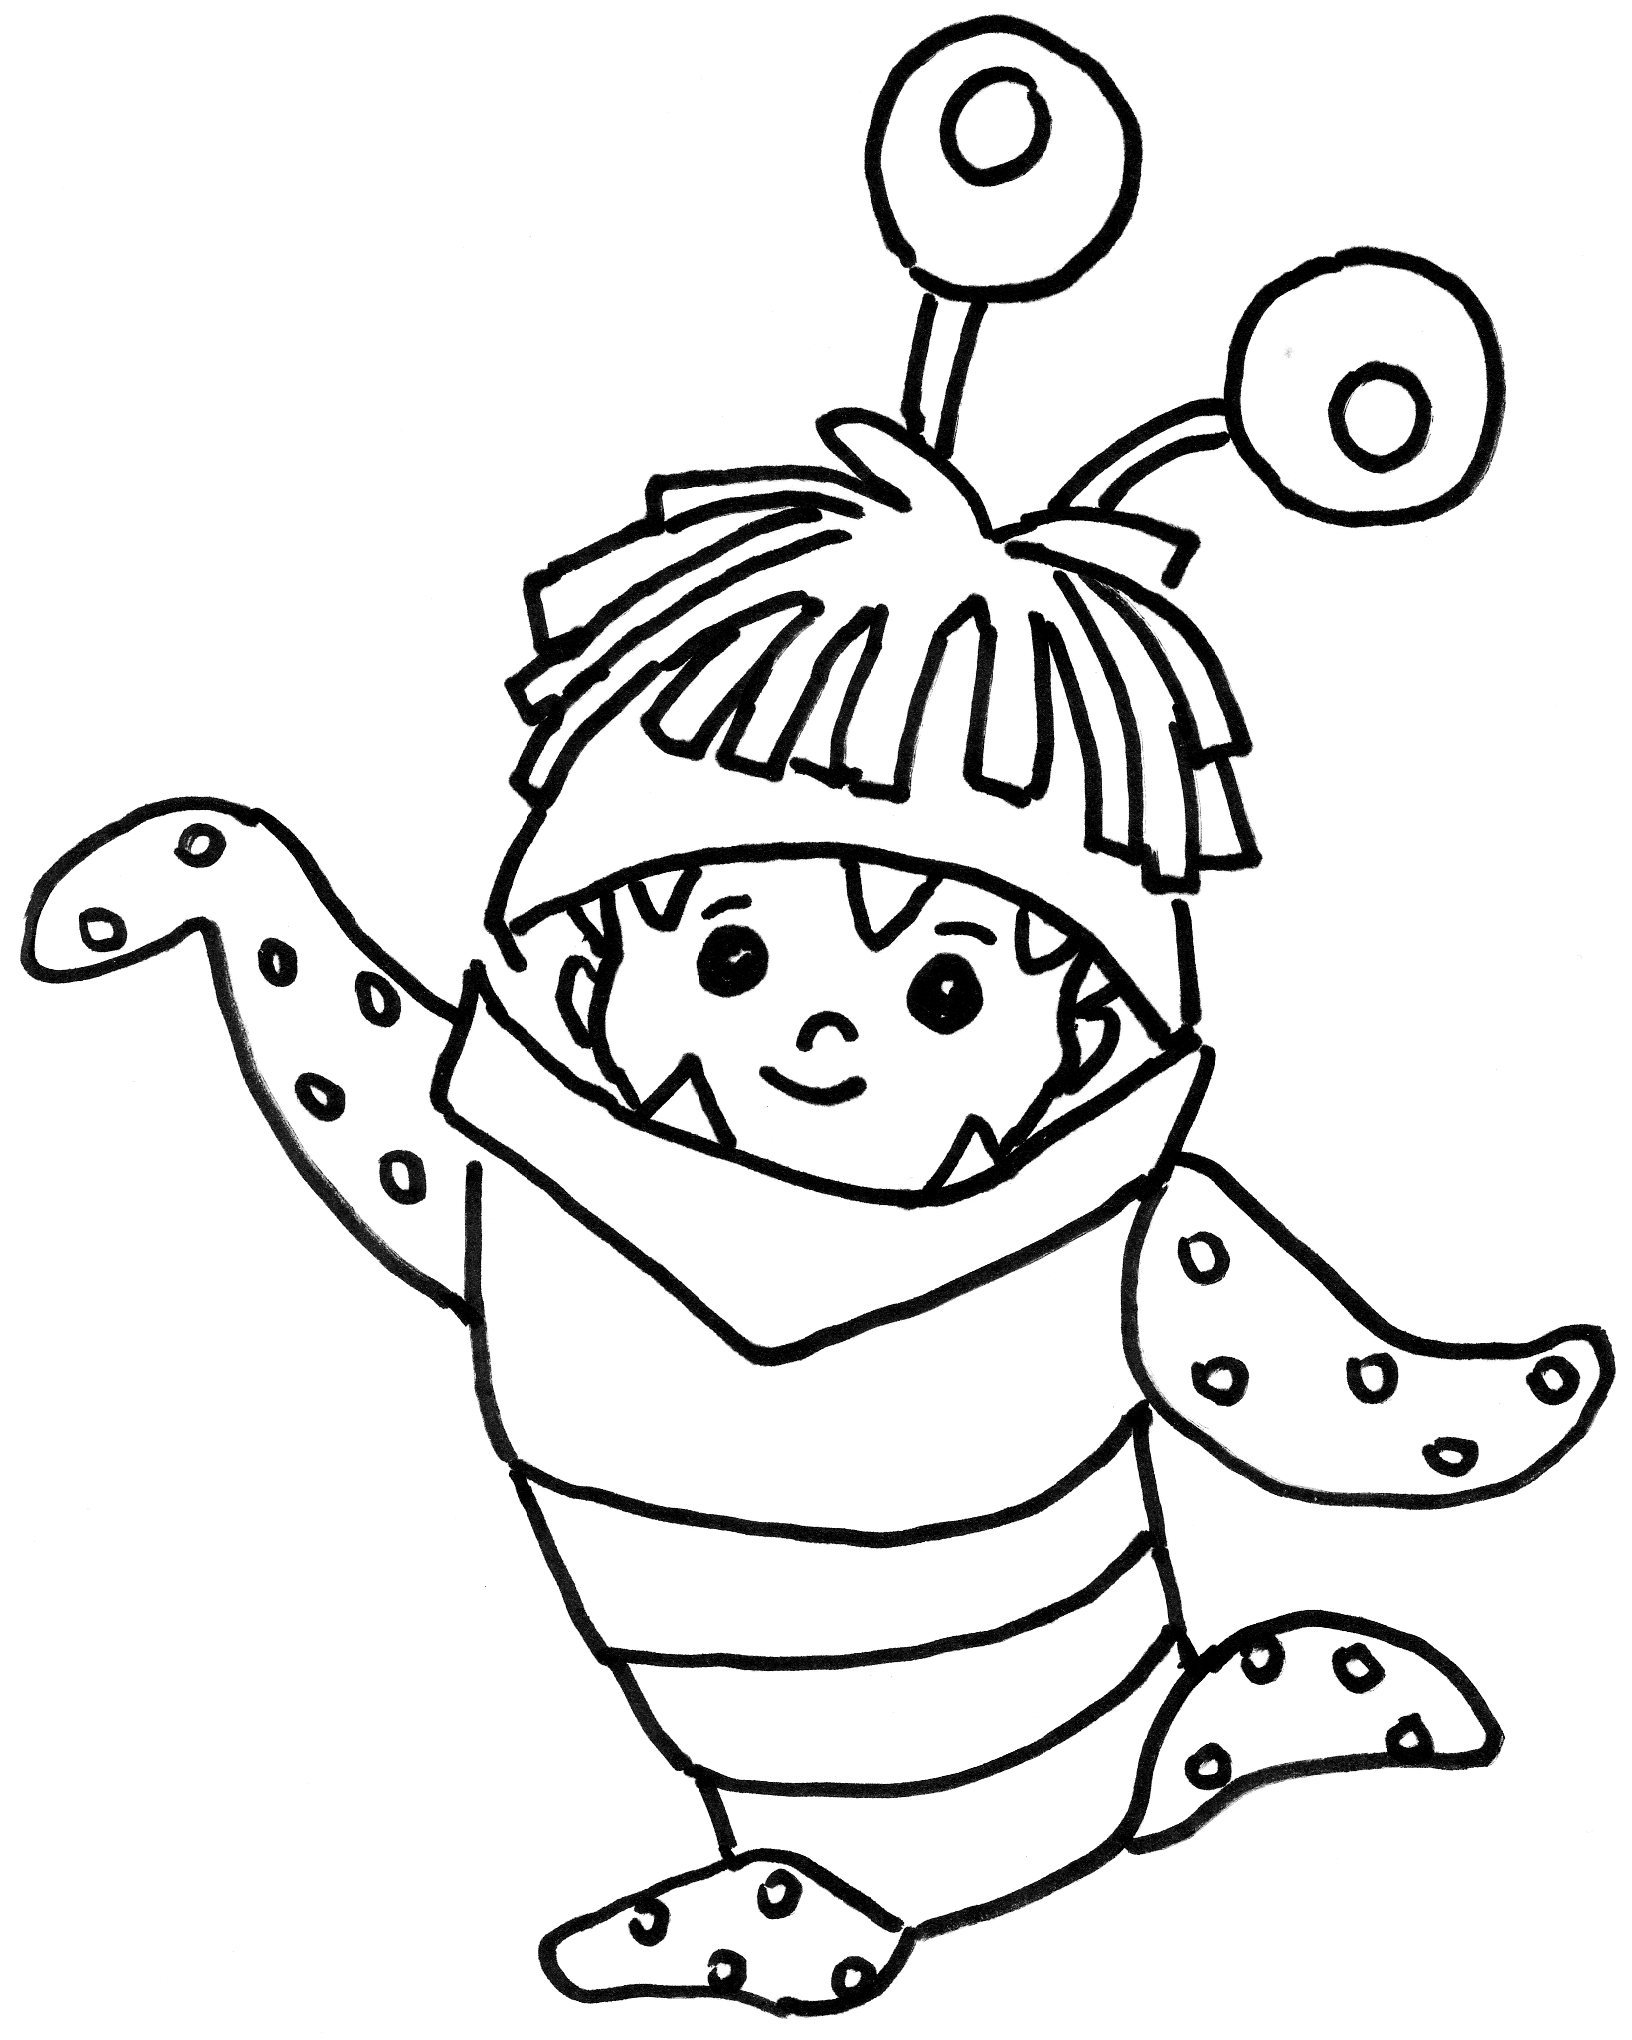 scary monster coloring pages scary monster coloring pages clipartsco scary monster coloring pages